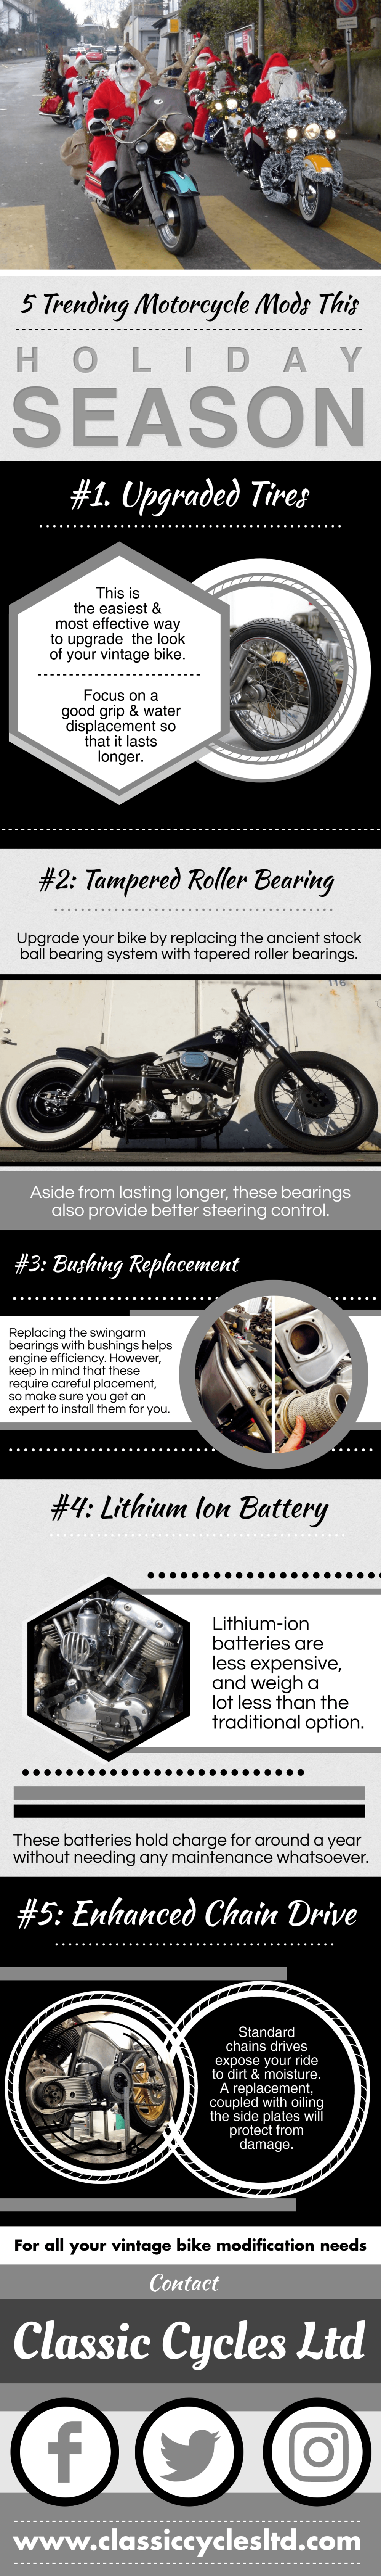 5 Trending Motorcycle Mods This Holiday Season.png